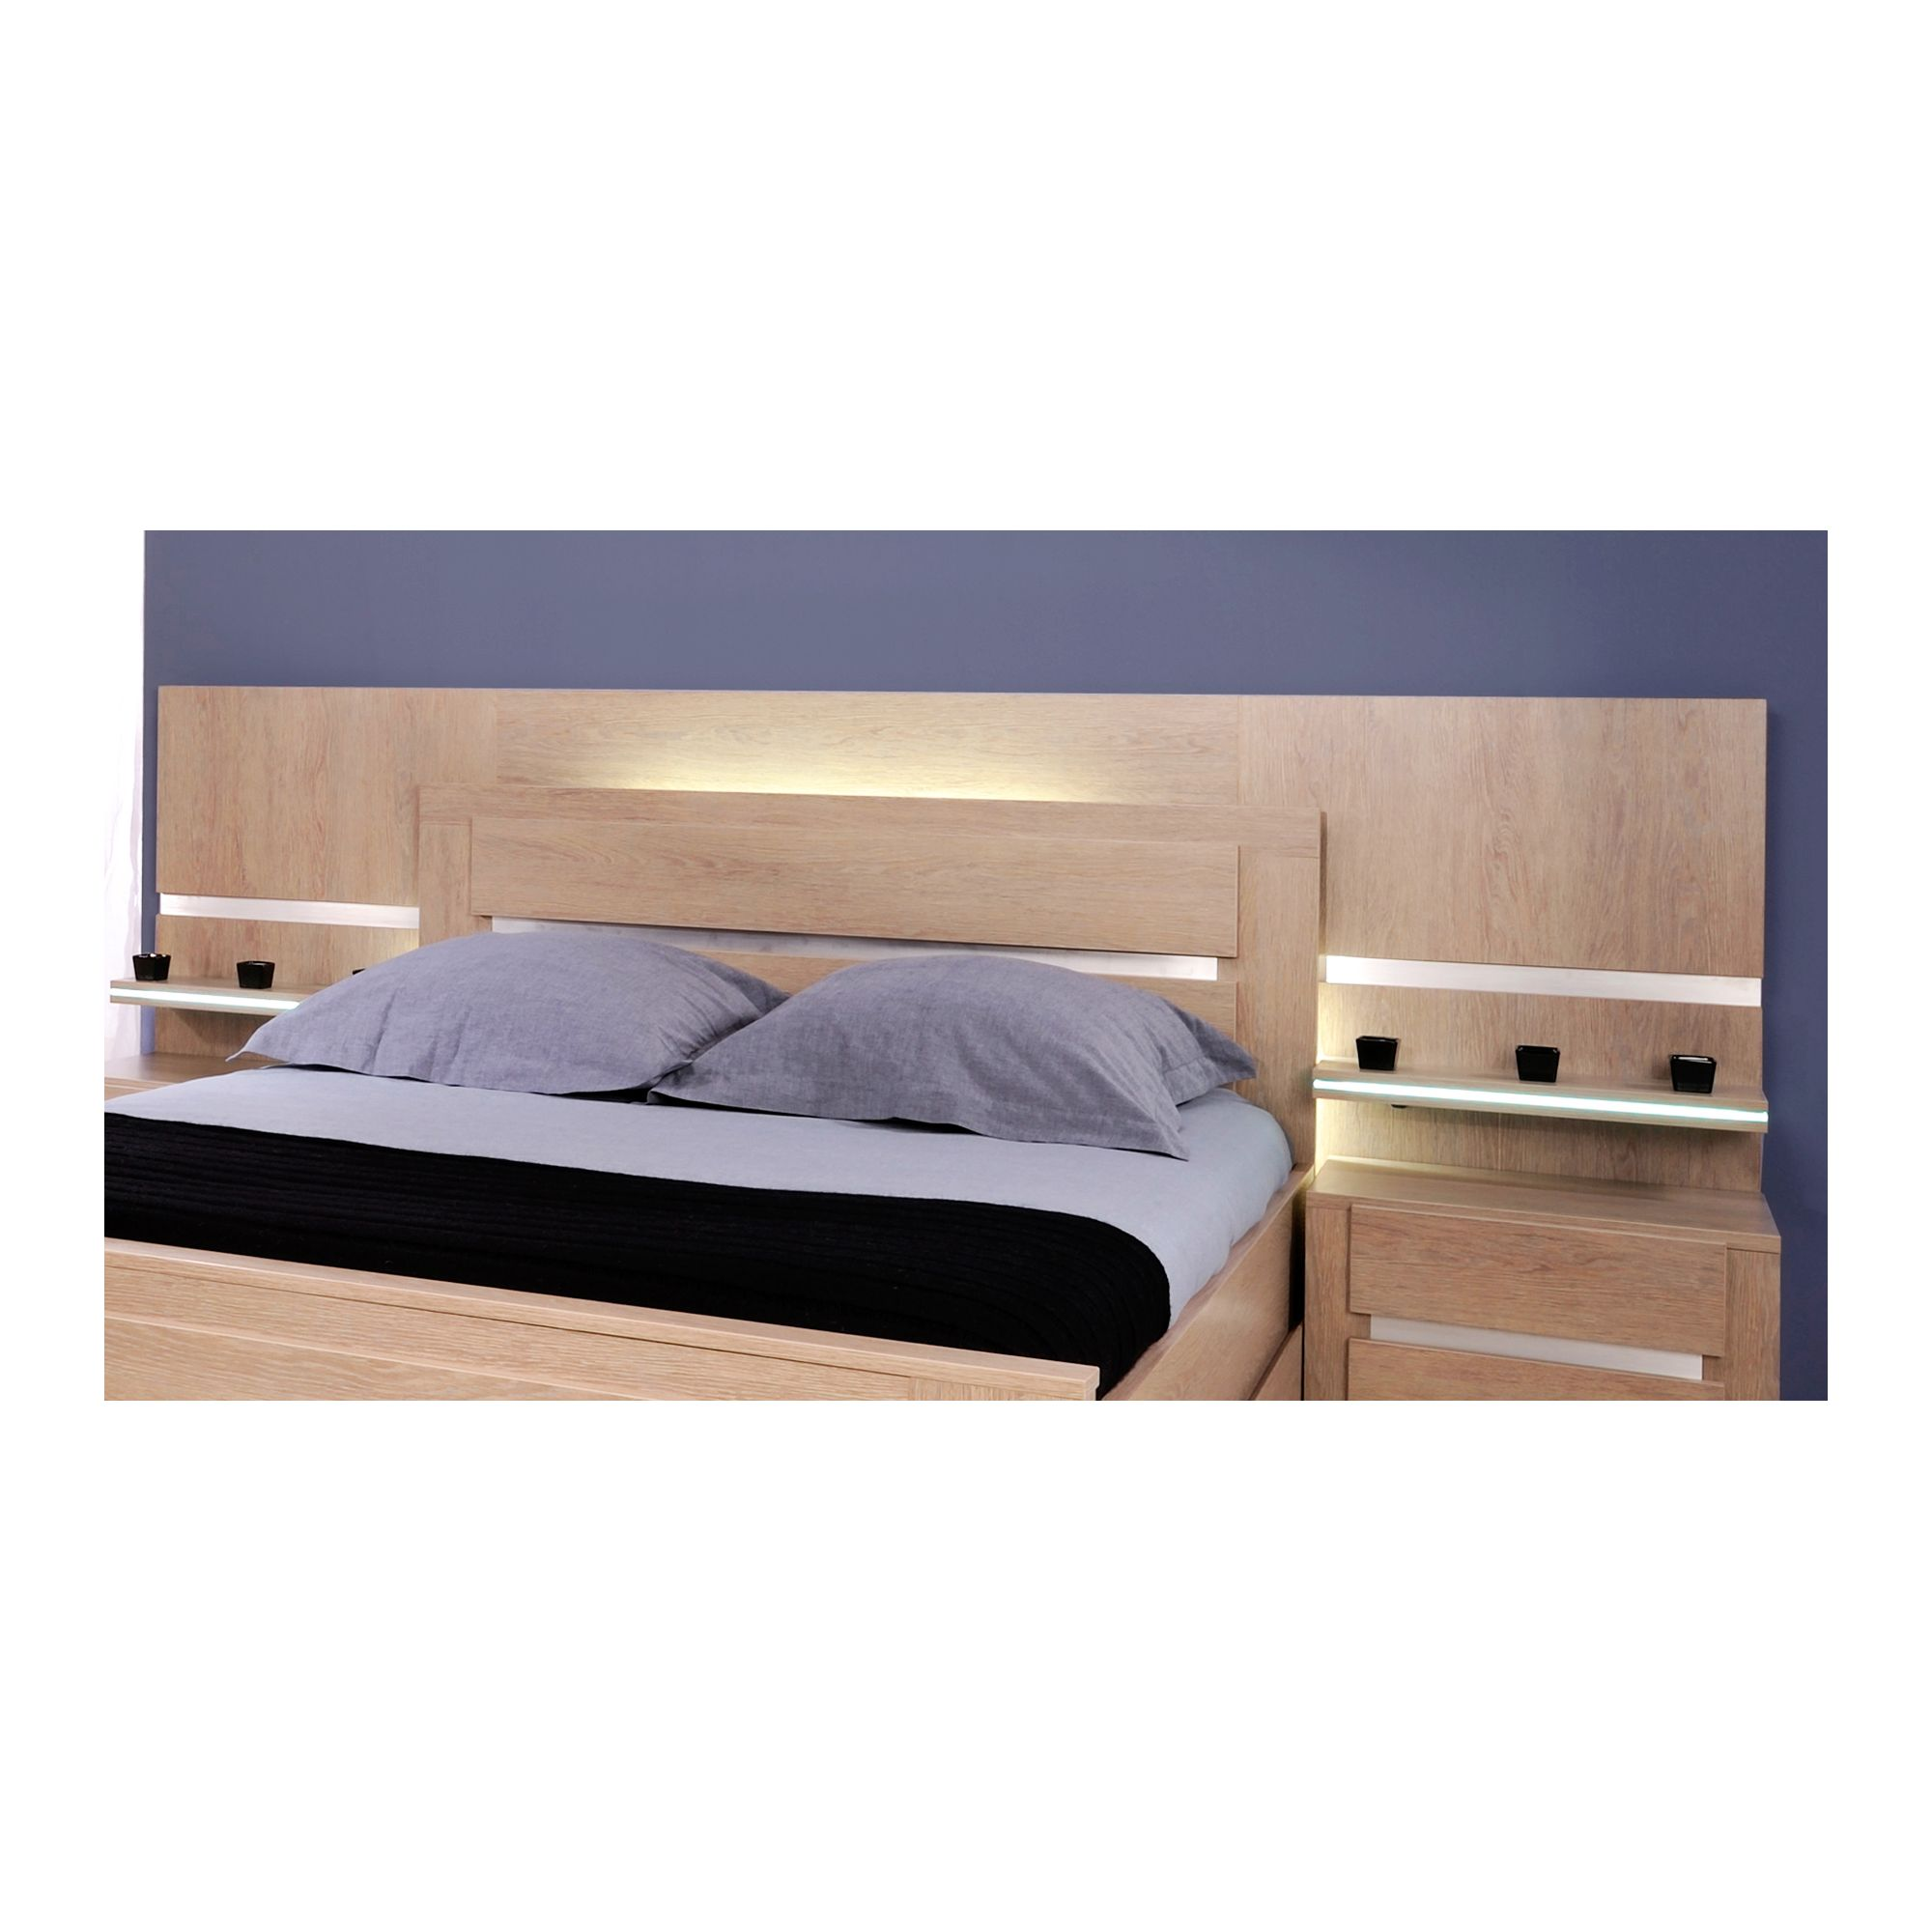 Parisot Shadow Bed Headboard in Ash Oak - European King at Tesco Direct